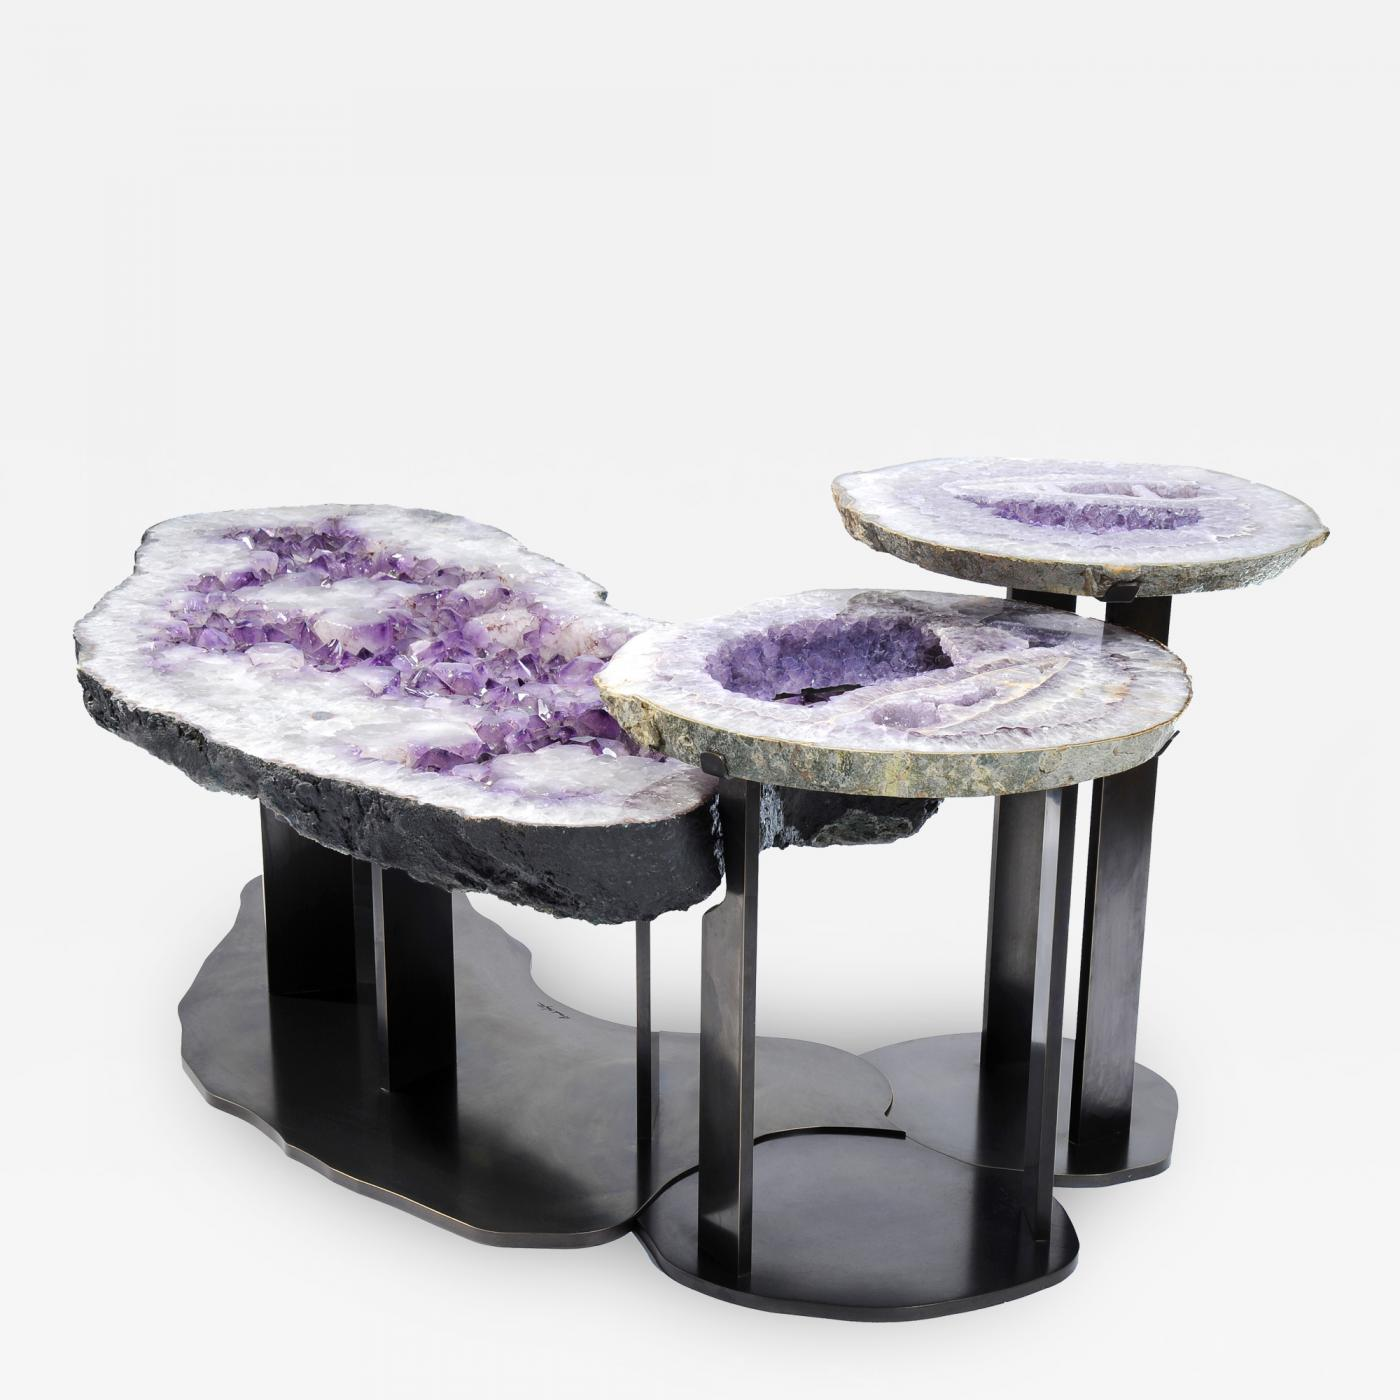 Brenda Houston Agate Coffee Table Caffe de Trio Agata